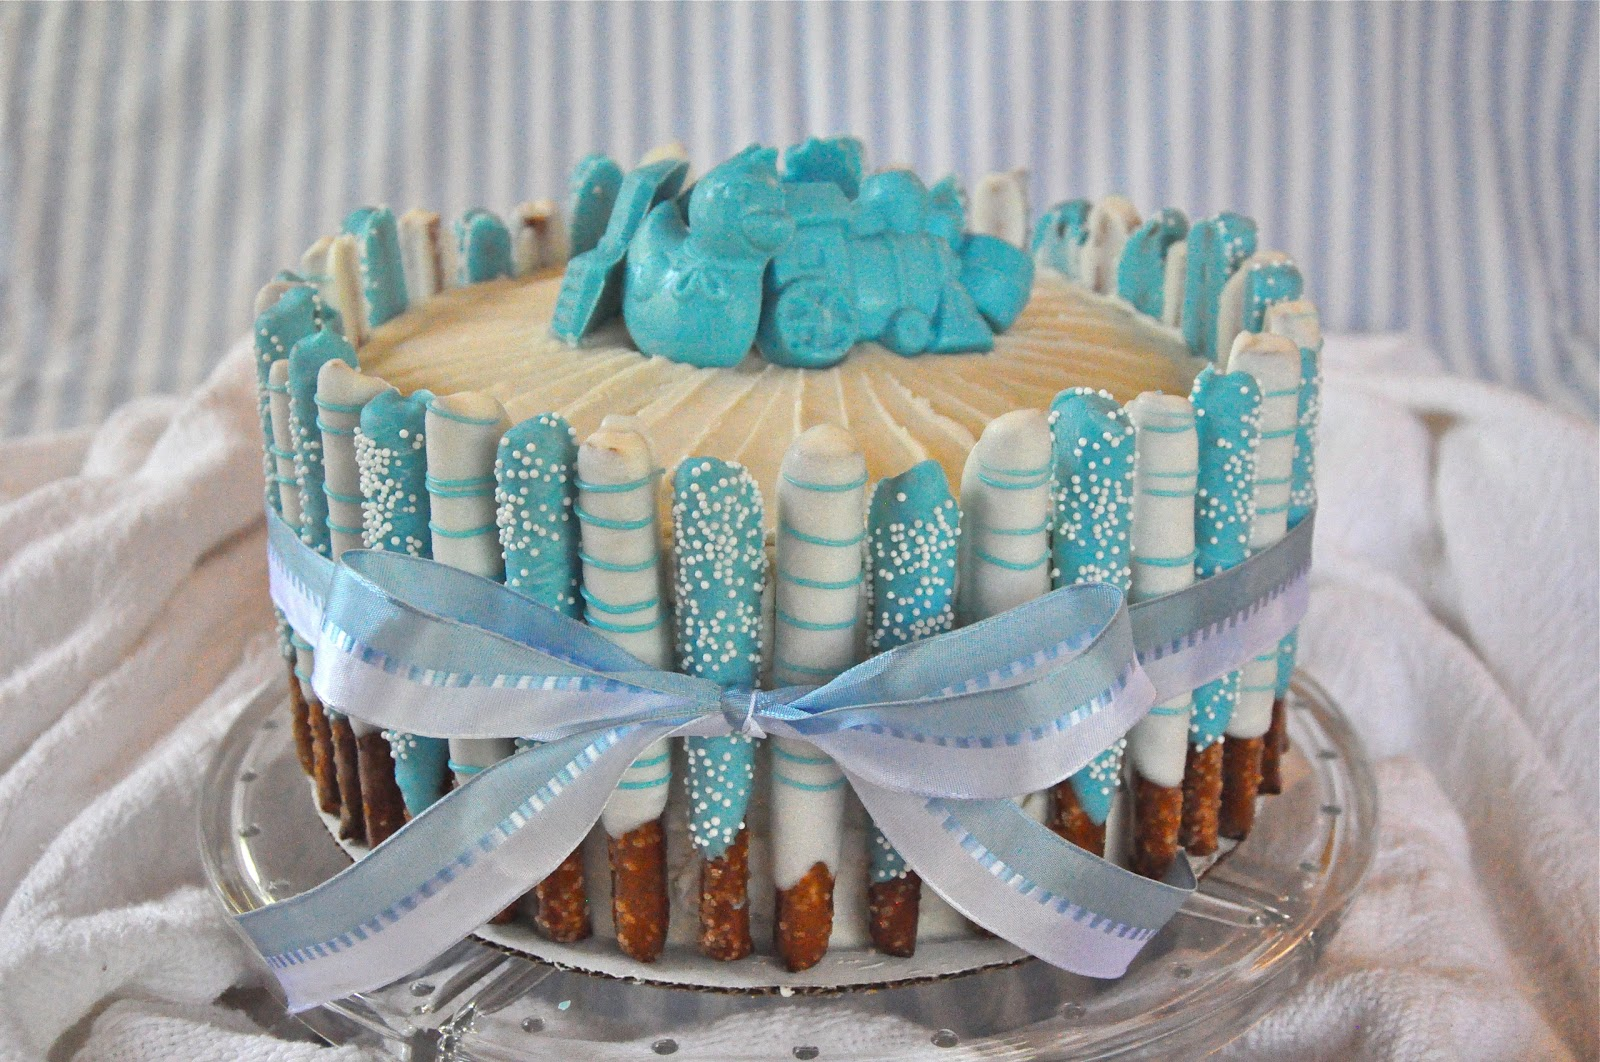 Simple Cake Decorating Ideas For Baby Shower : I think I could do that!: Blue Baby Boy Shower Cake